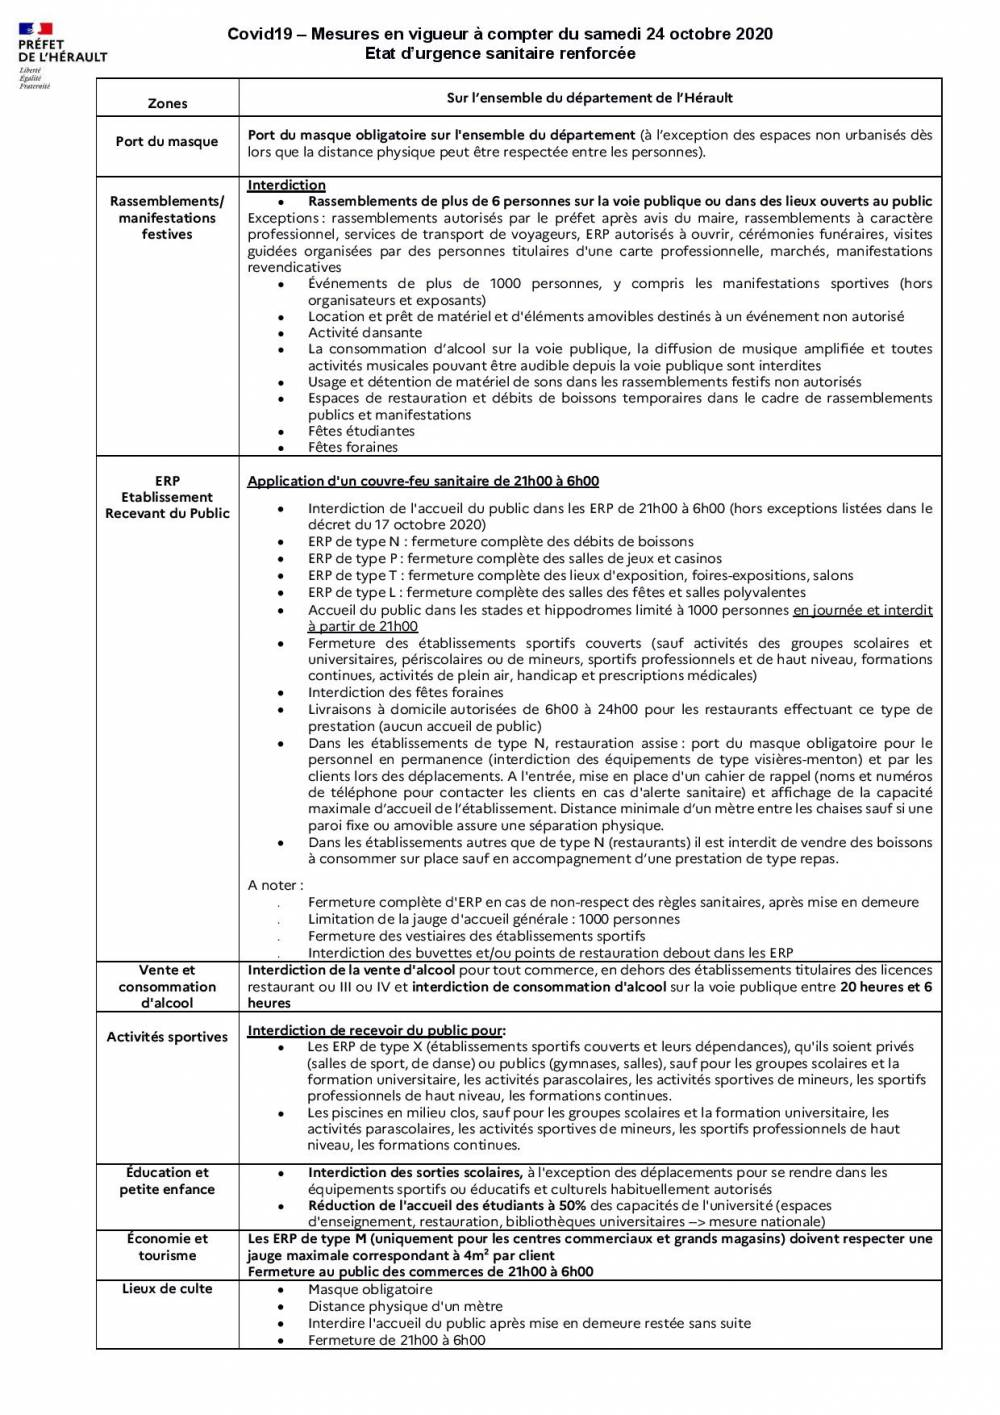 Mesures urgence sanitaire covid19 tout departement VF 241020 page 001